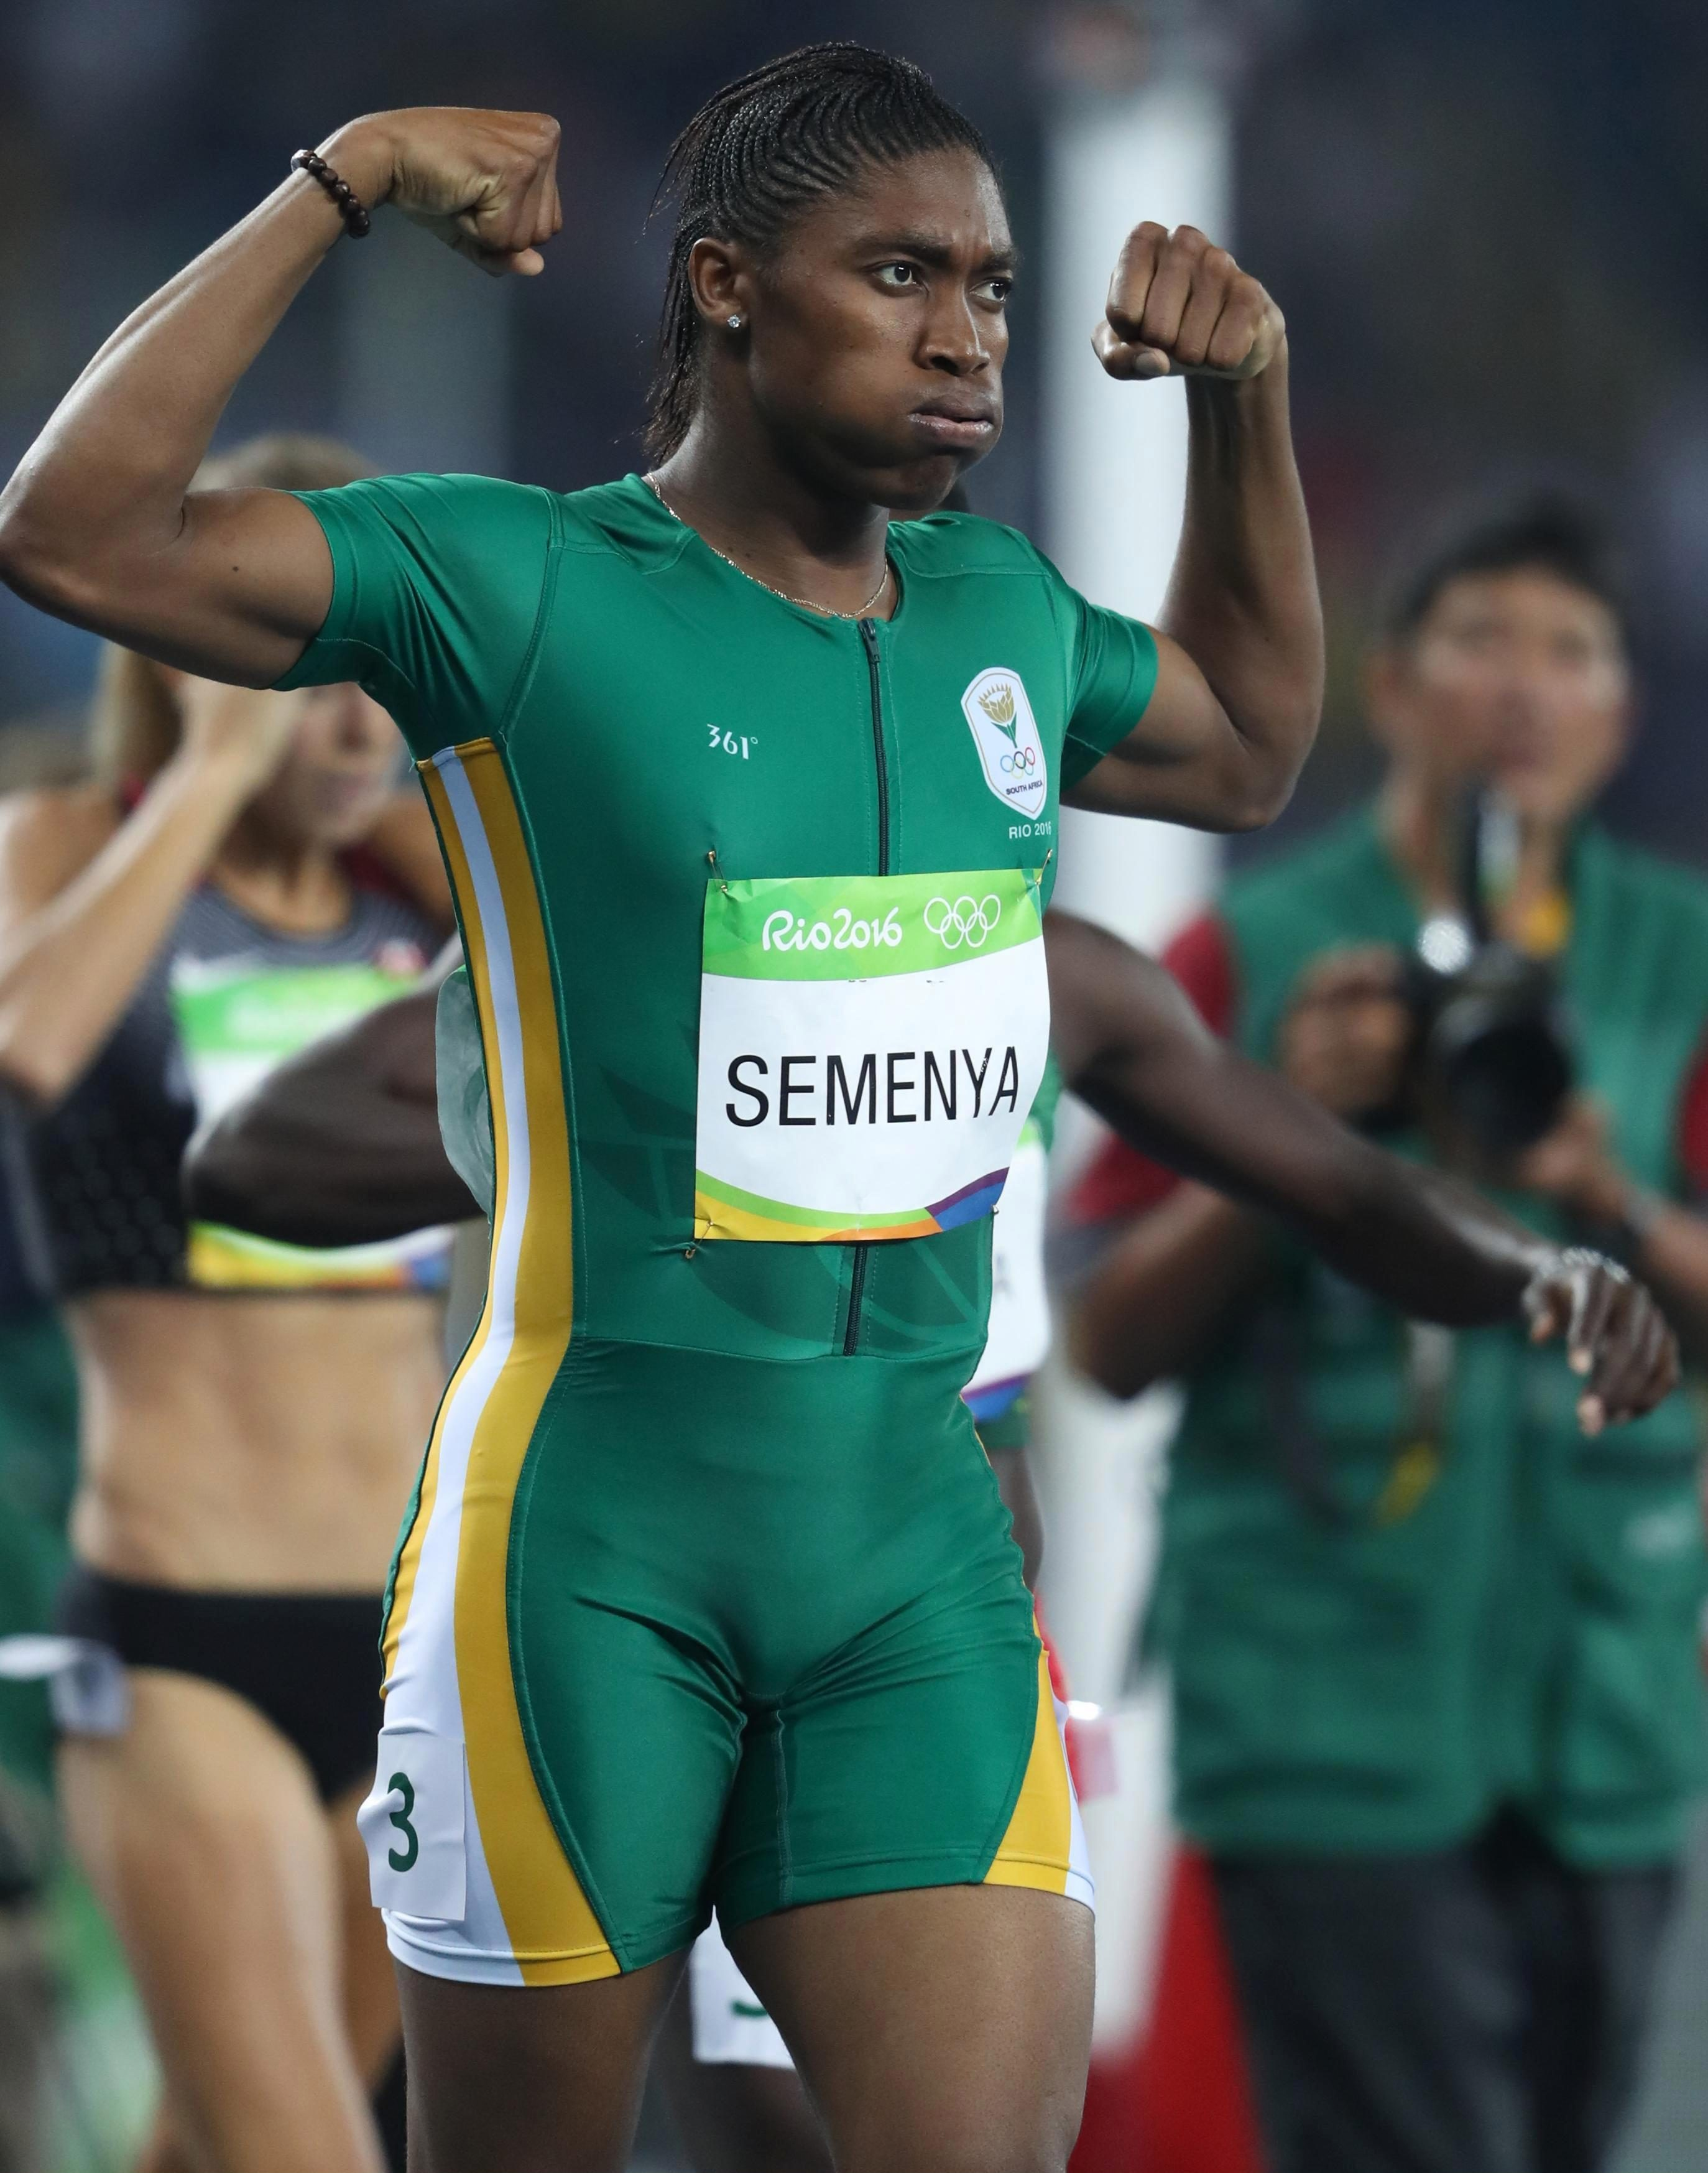 Caster Semenya remains one of the most controversial athletes in the world as a result of her hyperandrogenism